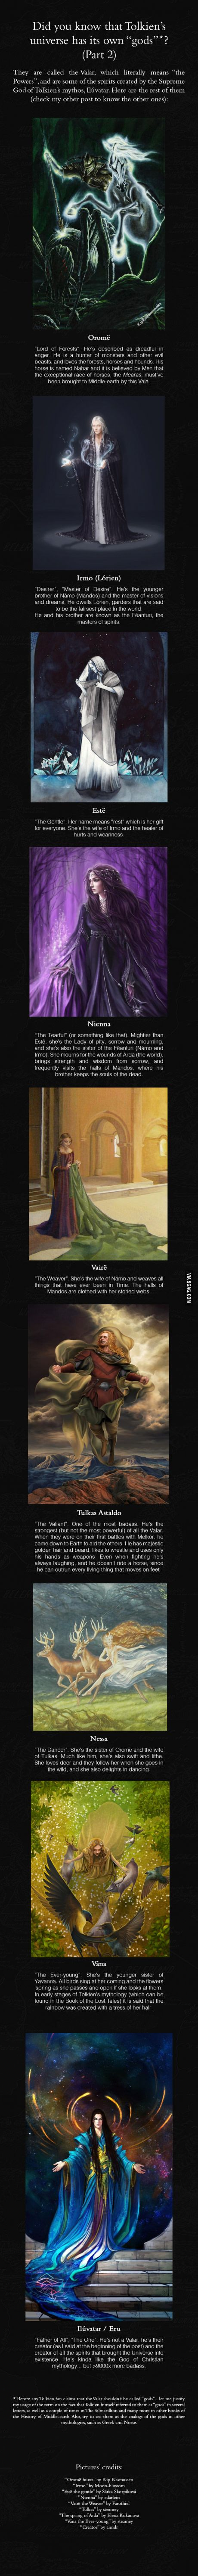 The Valar, part 2 - J.R.R. Tolkien's Mythology - I found the other ones!